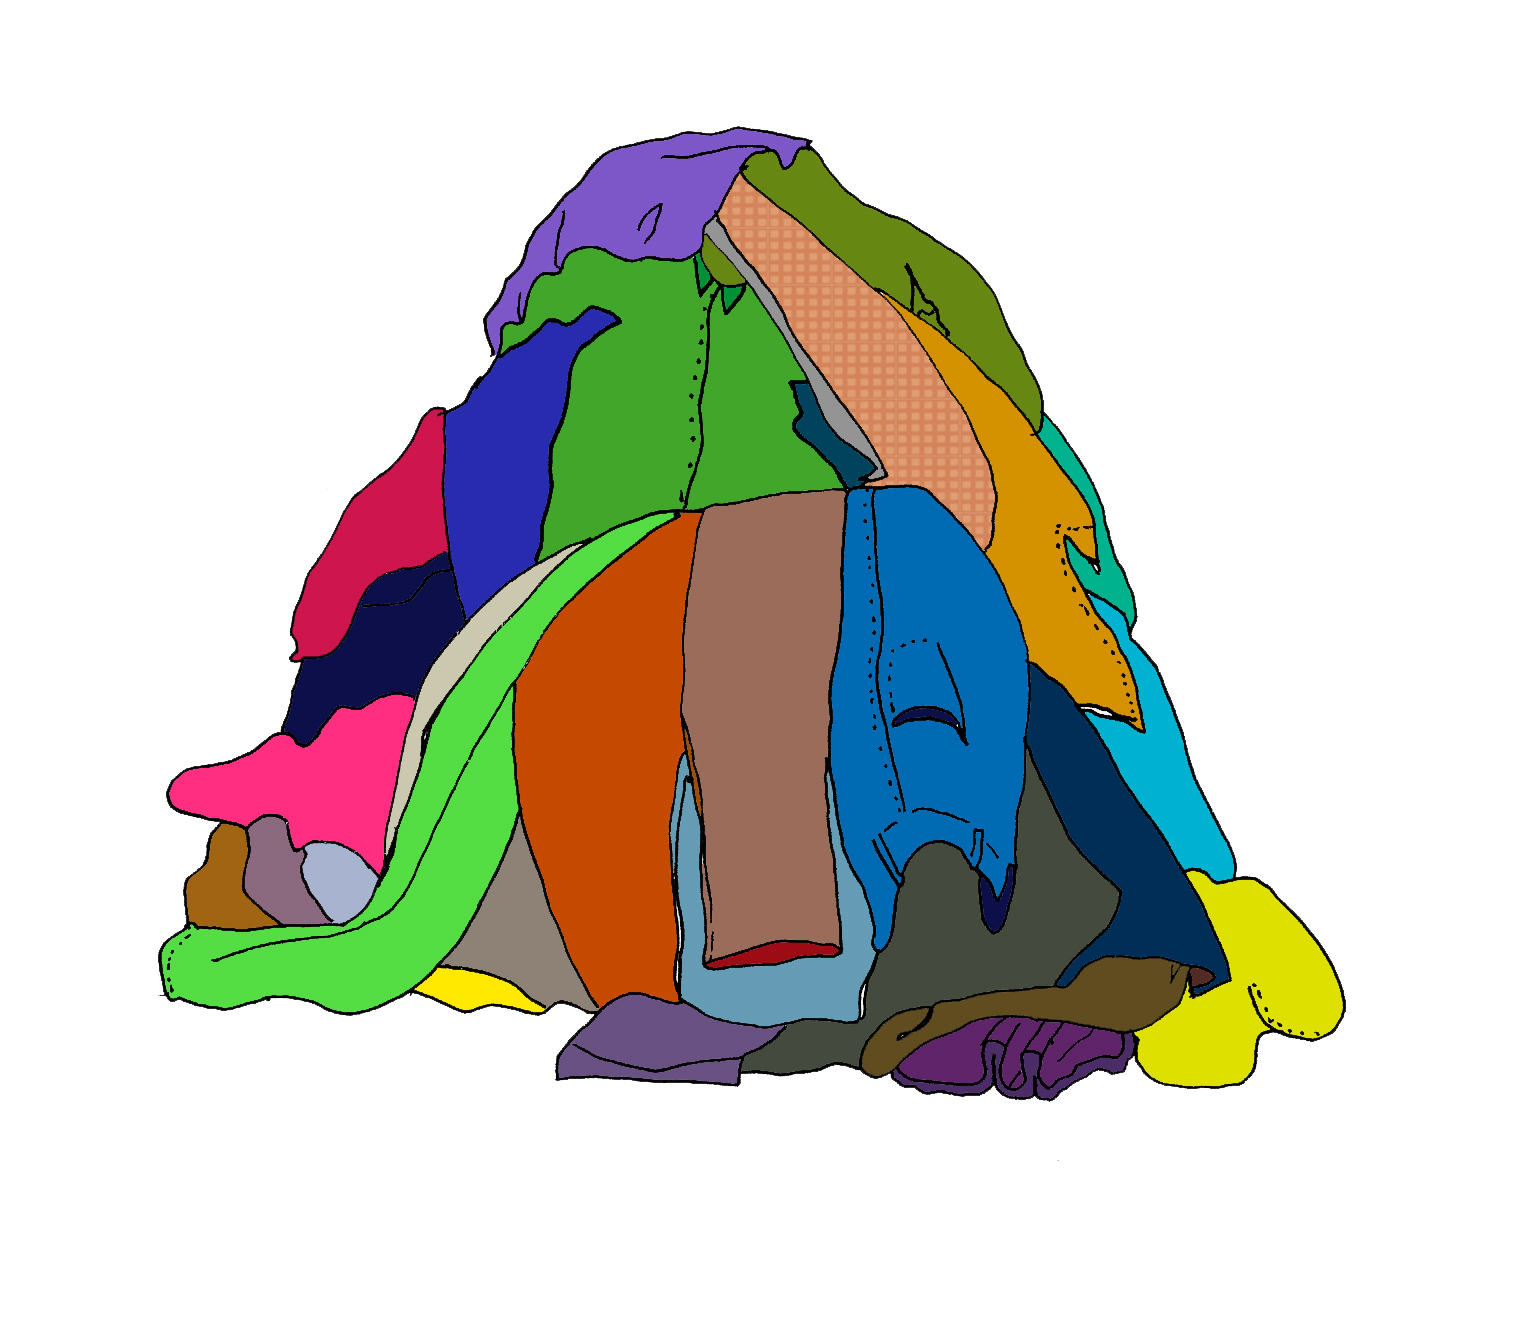 pile of clothes clipart free download best pile of clothes clipart rh clipartmag com My Pile of Clothes My Pile of Clothes